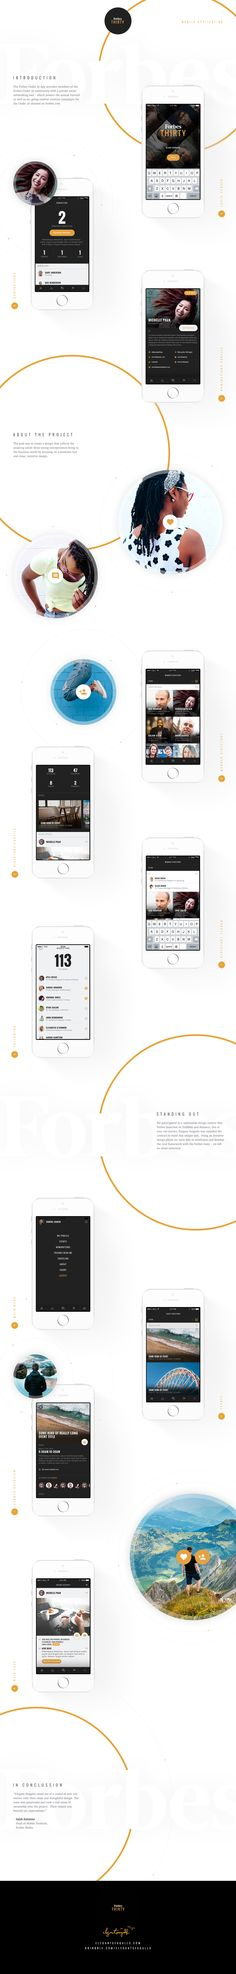 The Forbes Under 30 App provides members of the Forbes Under 30 community with a private social networking tool - which powers the annual Summit as well as on-going content creation campaigns for the Under 30 channel on Forbes.com.The goal was to create…